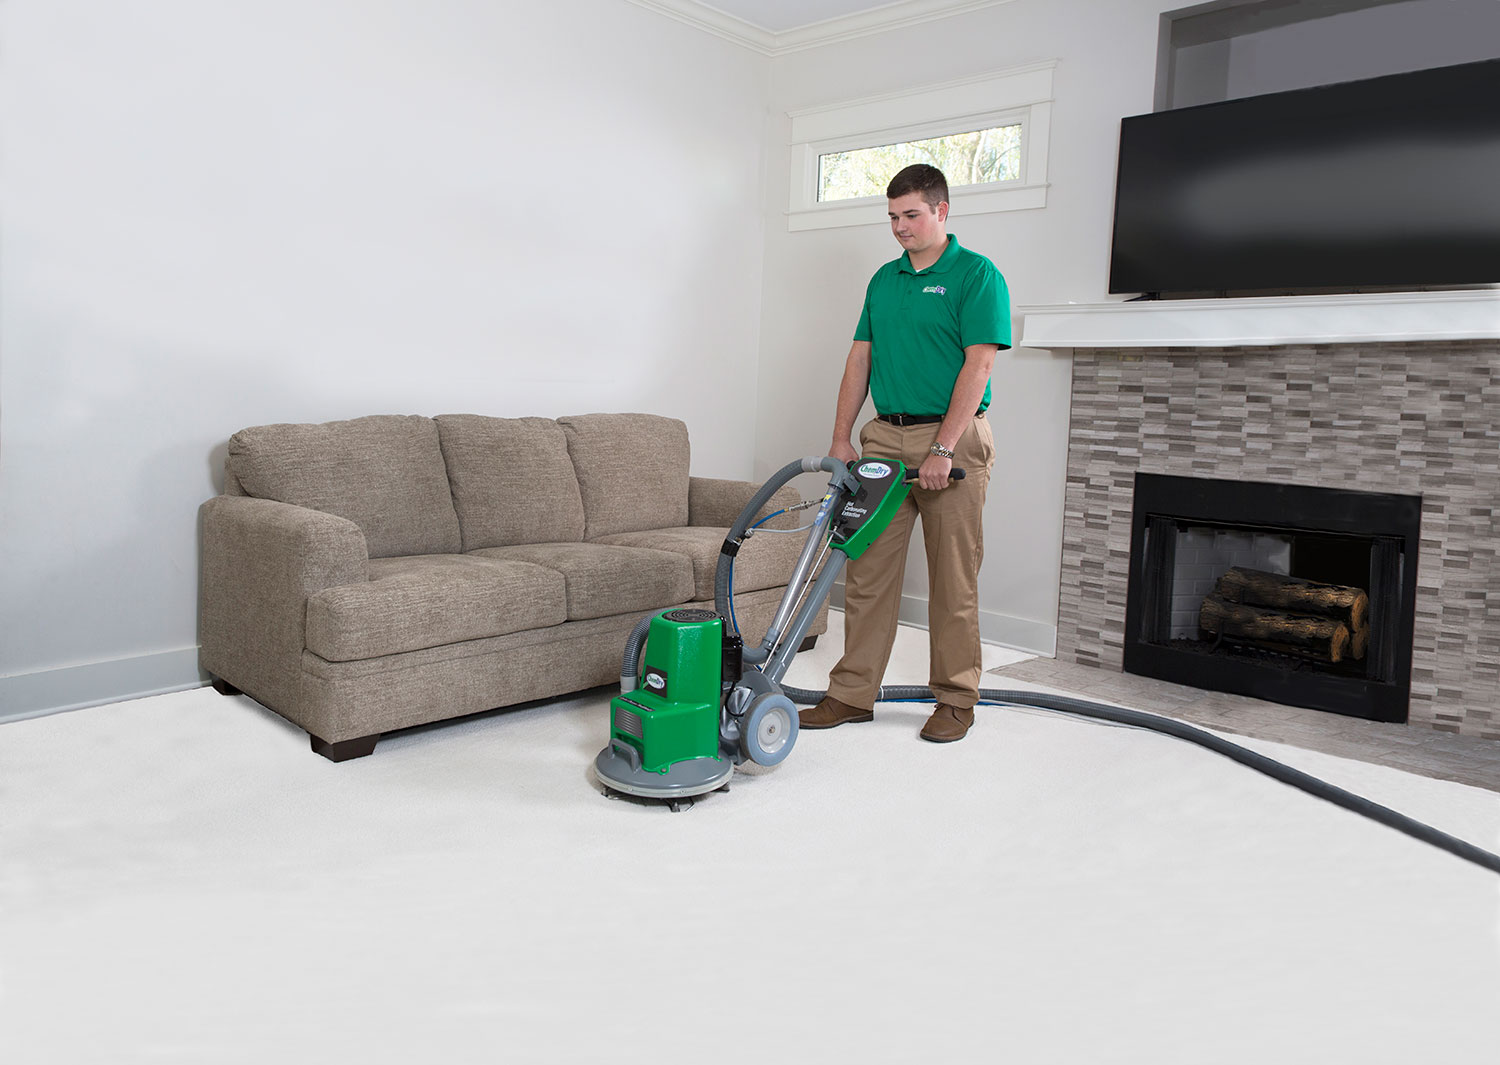 carpet-cleaning-man-with-powerhead